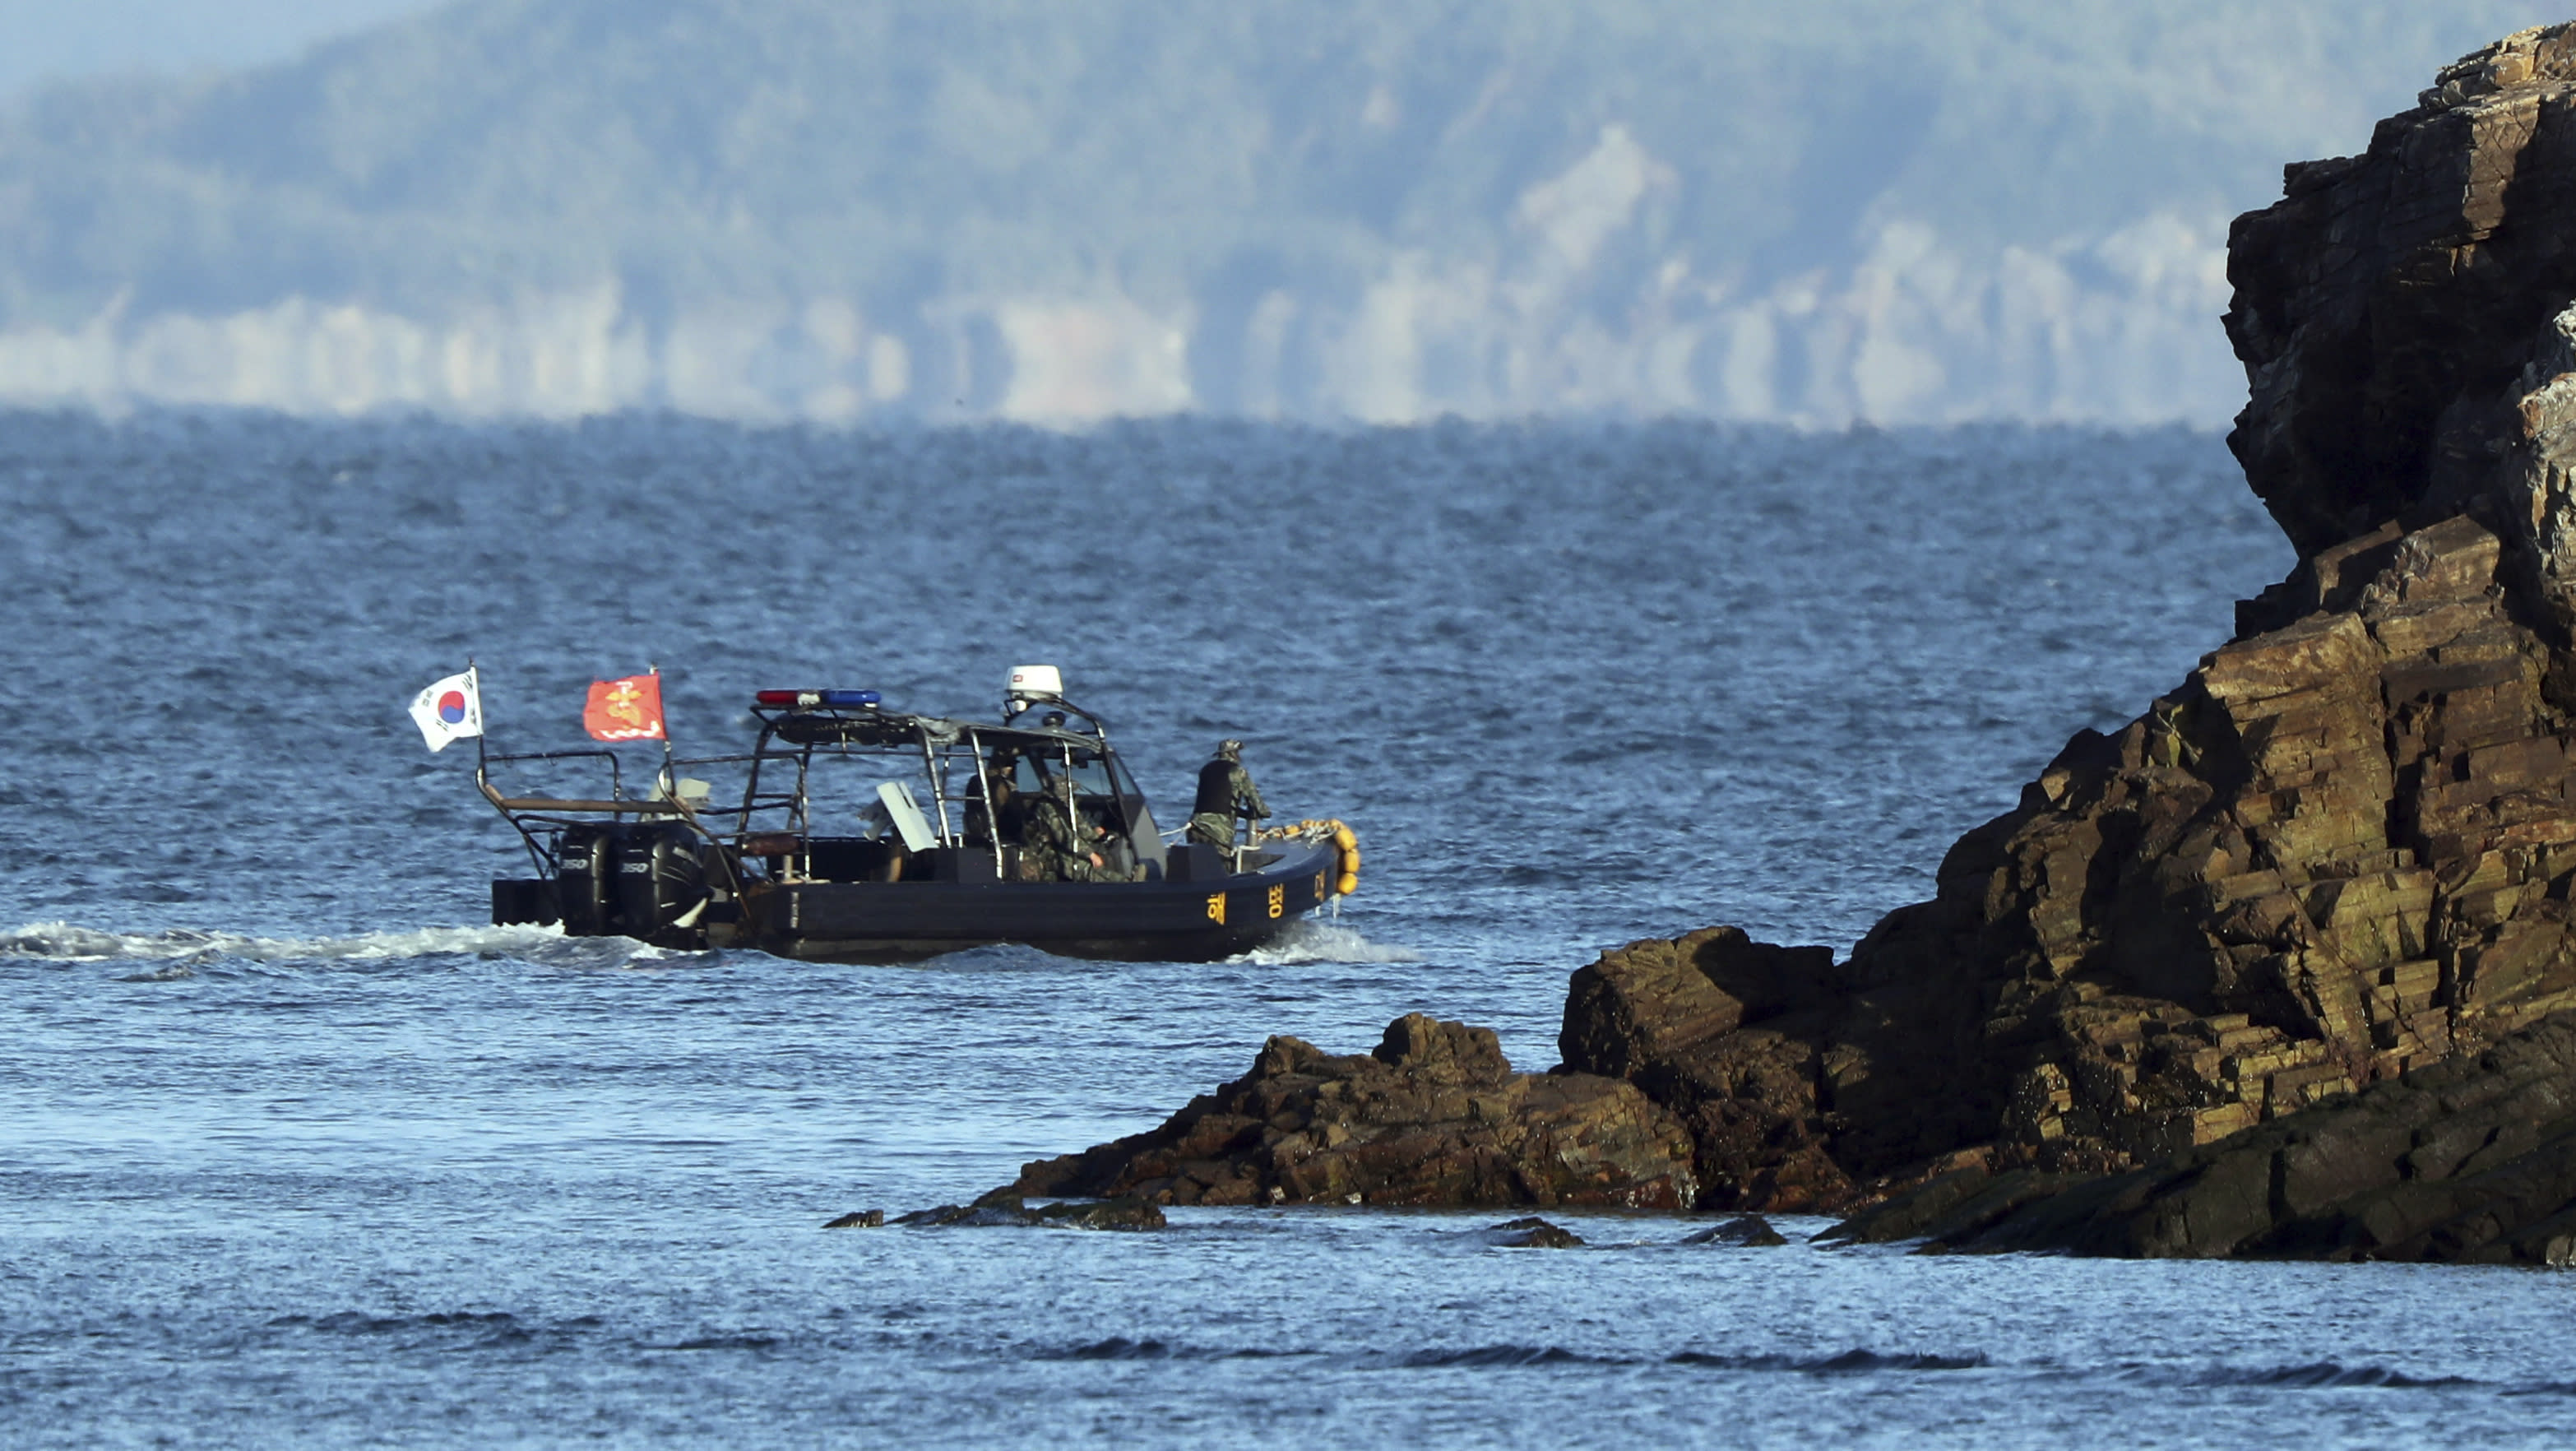 FILE - In this Sept. 27, 2020 file photo, a South Korean marine boat patrols near Yeonpyeong island, South Korea. South Korean President Moon Jae-in has apologized for the first time for the killing of a man who was shot by North Korean troops last week, saying his government failed in its responsibility to safeguard a citizen. The shooting triggered outrage that Seoul apparently wasted hours to rescue the man before his death. (Baek Seung-ryul/Yonhap via AP, File)